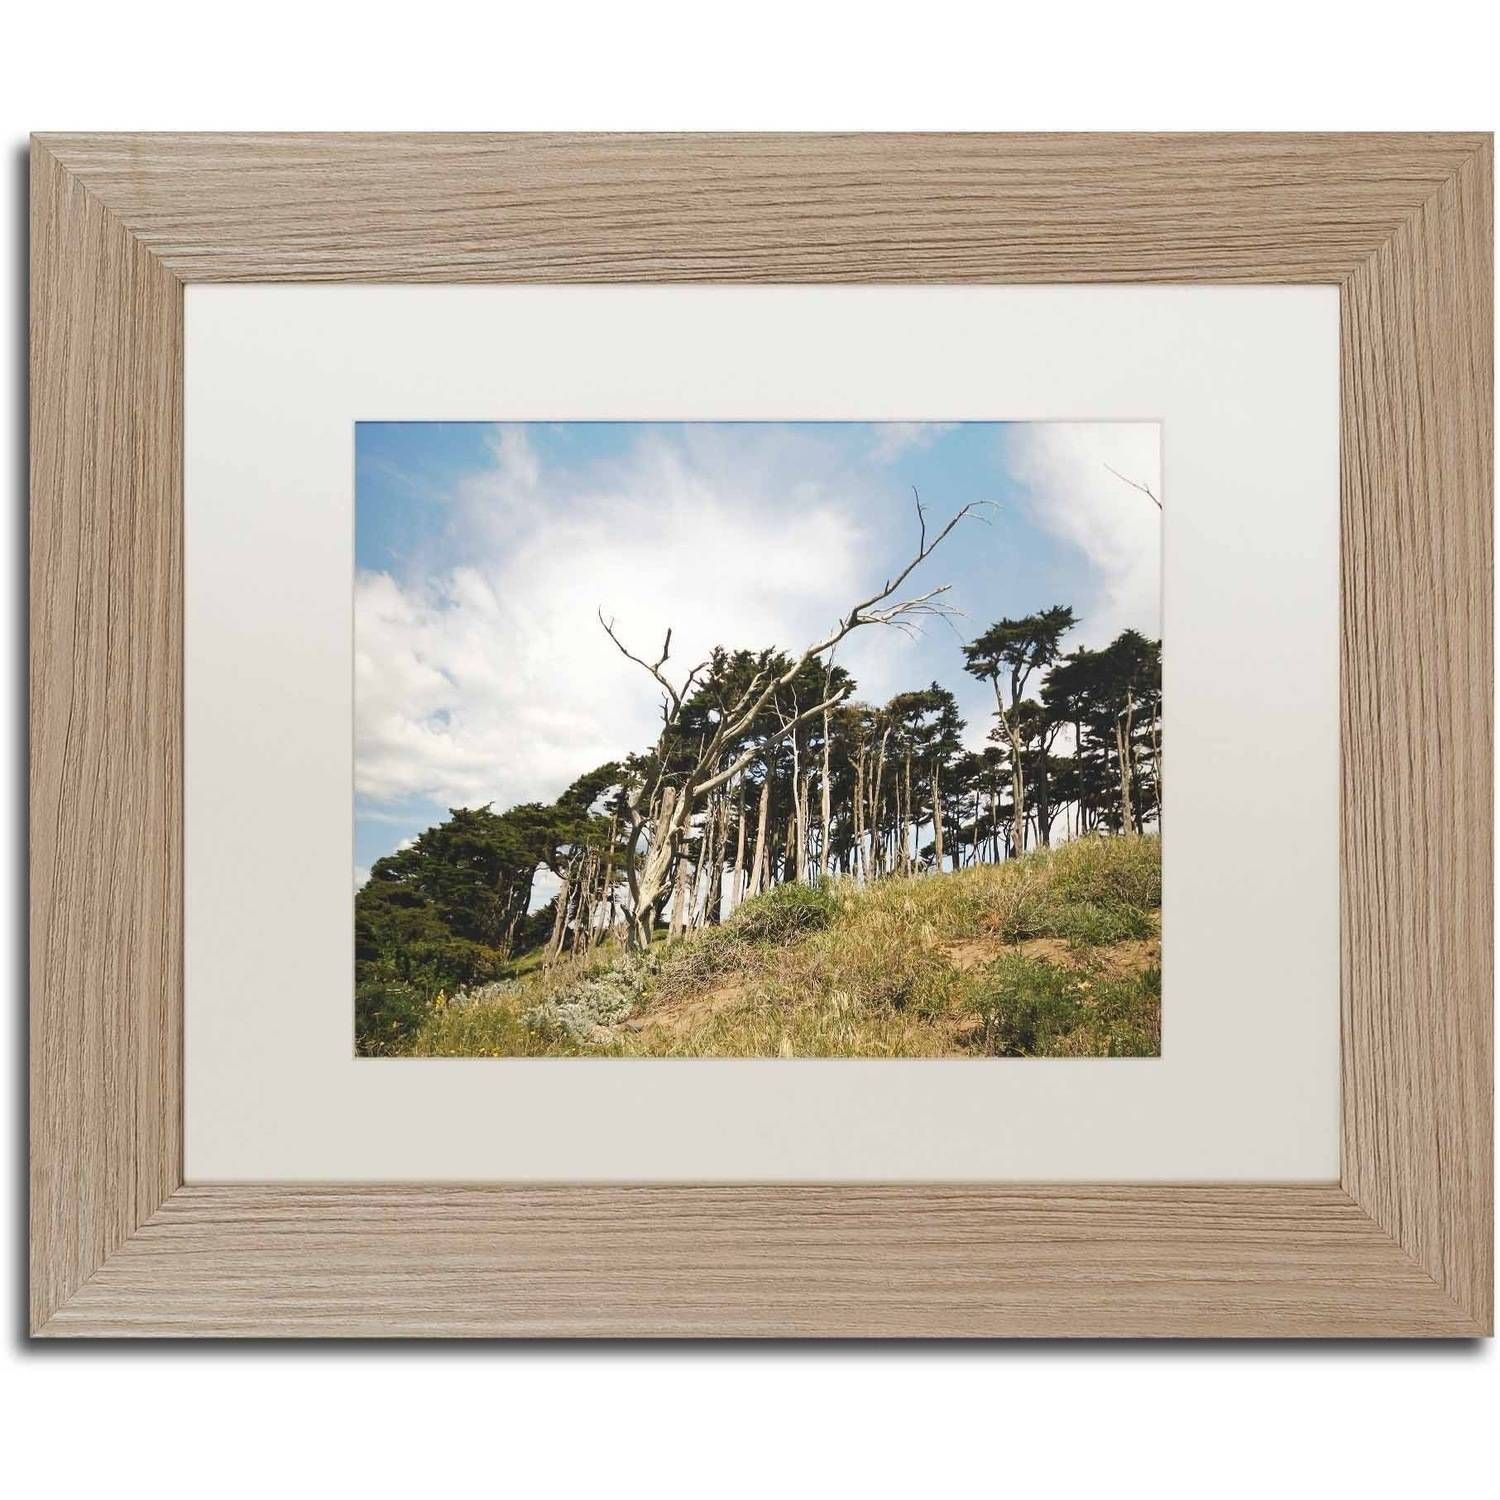 Trademark Fine Art 'Presidio Trees' Canvas Art by Ariane Moshayedi, White Matte, Birch Frame